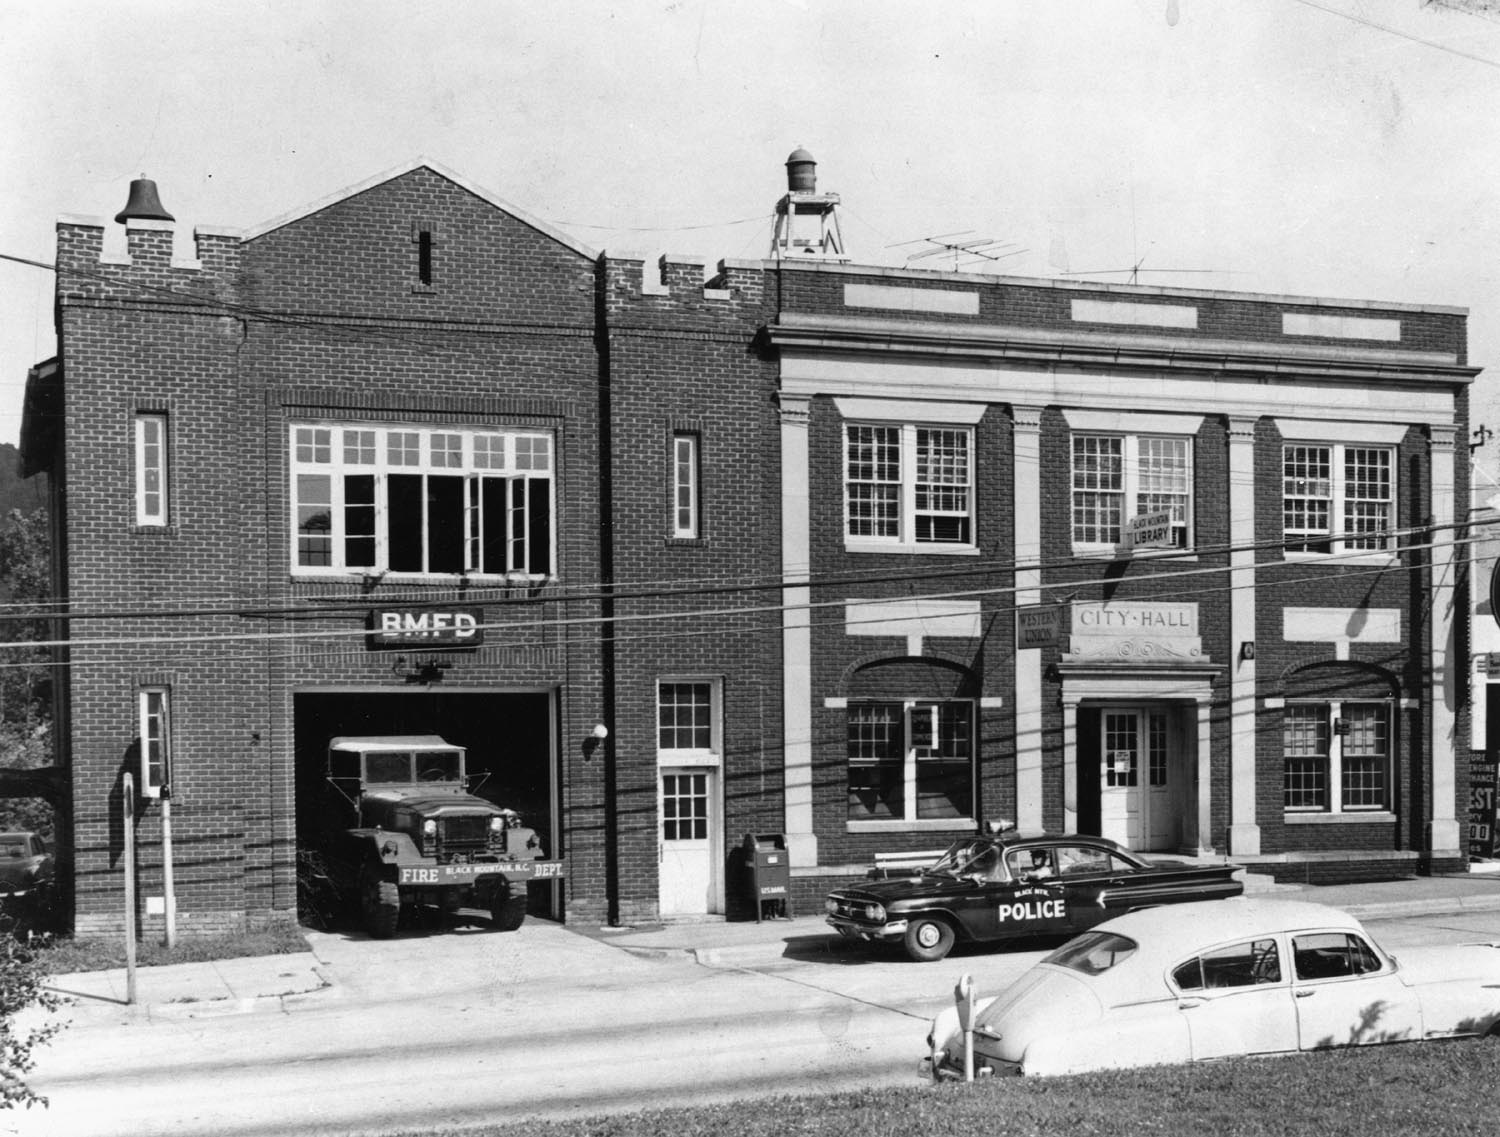 Black Mountain Firehouse in 1950. The building was turned into a museum in 1989 and still remains a historic part of the town.